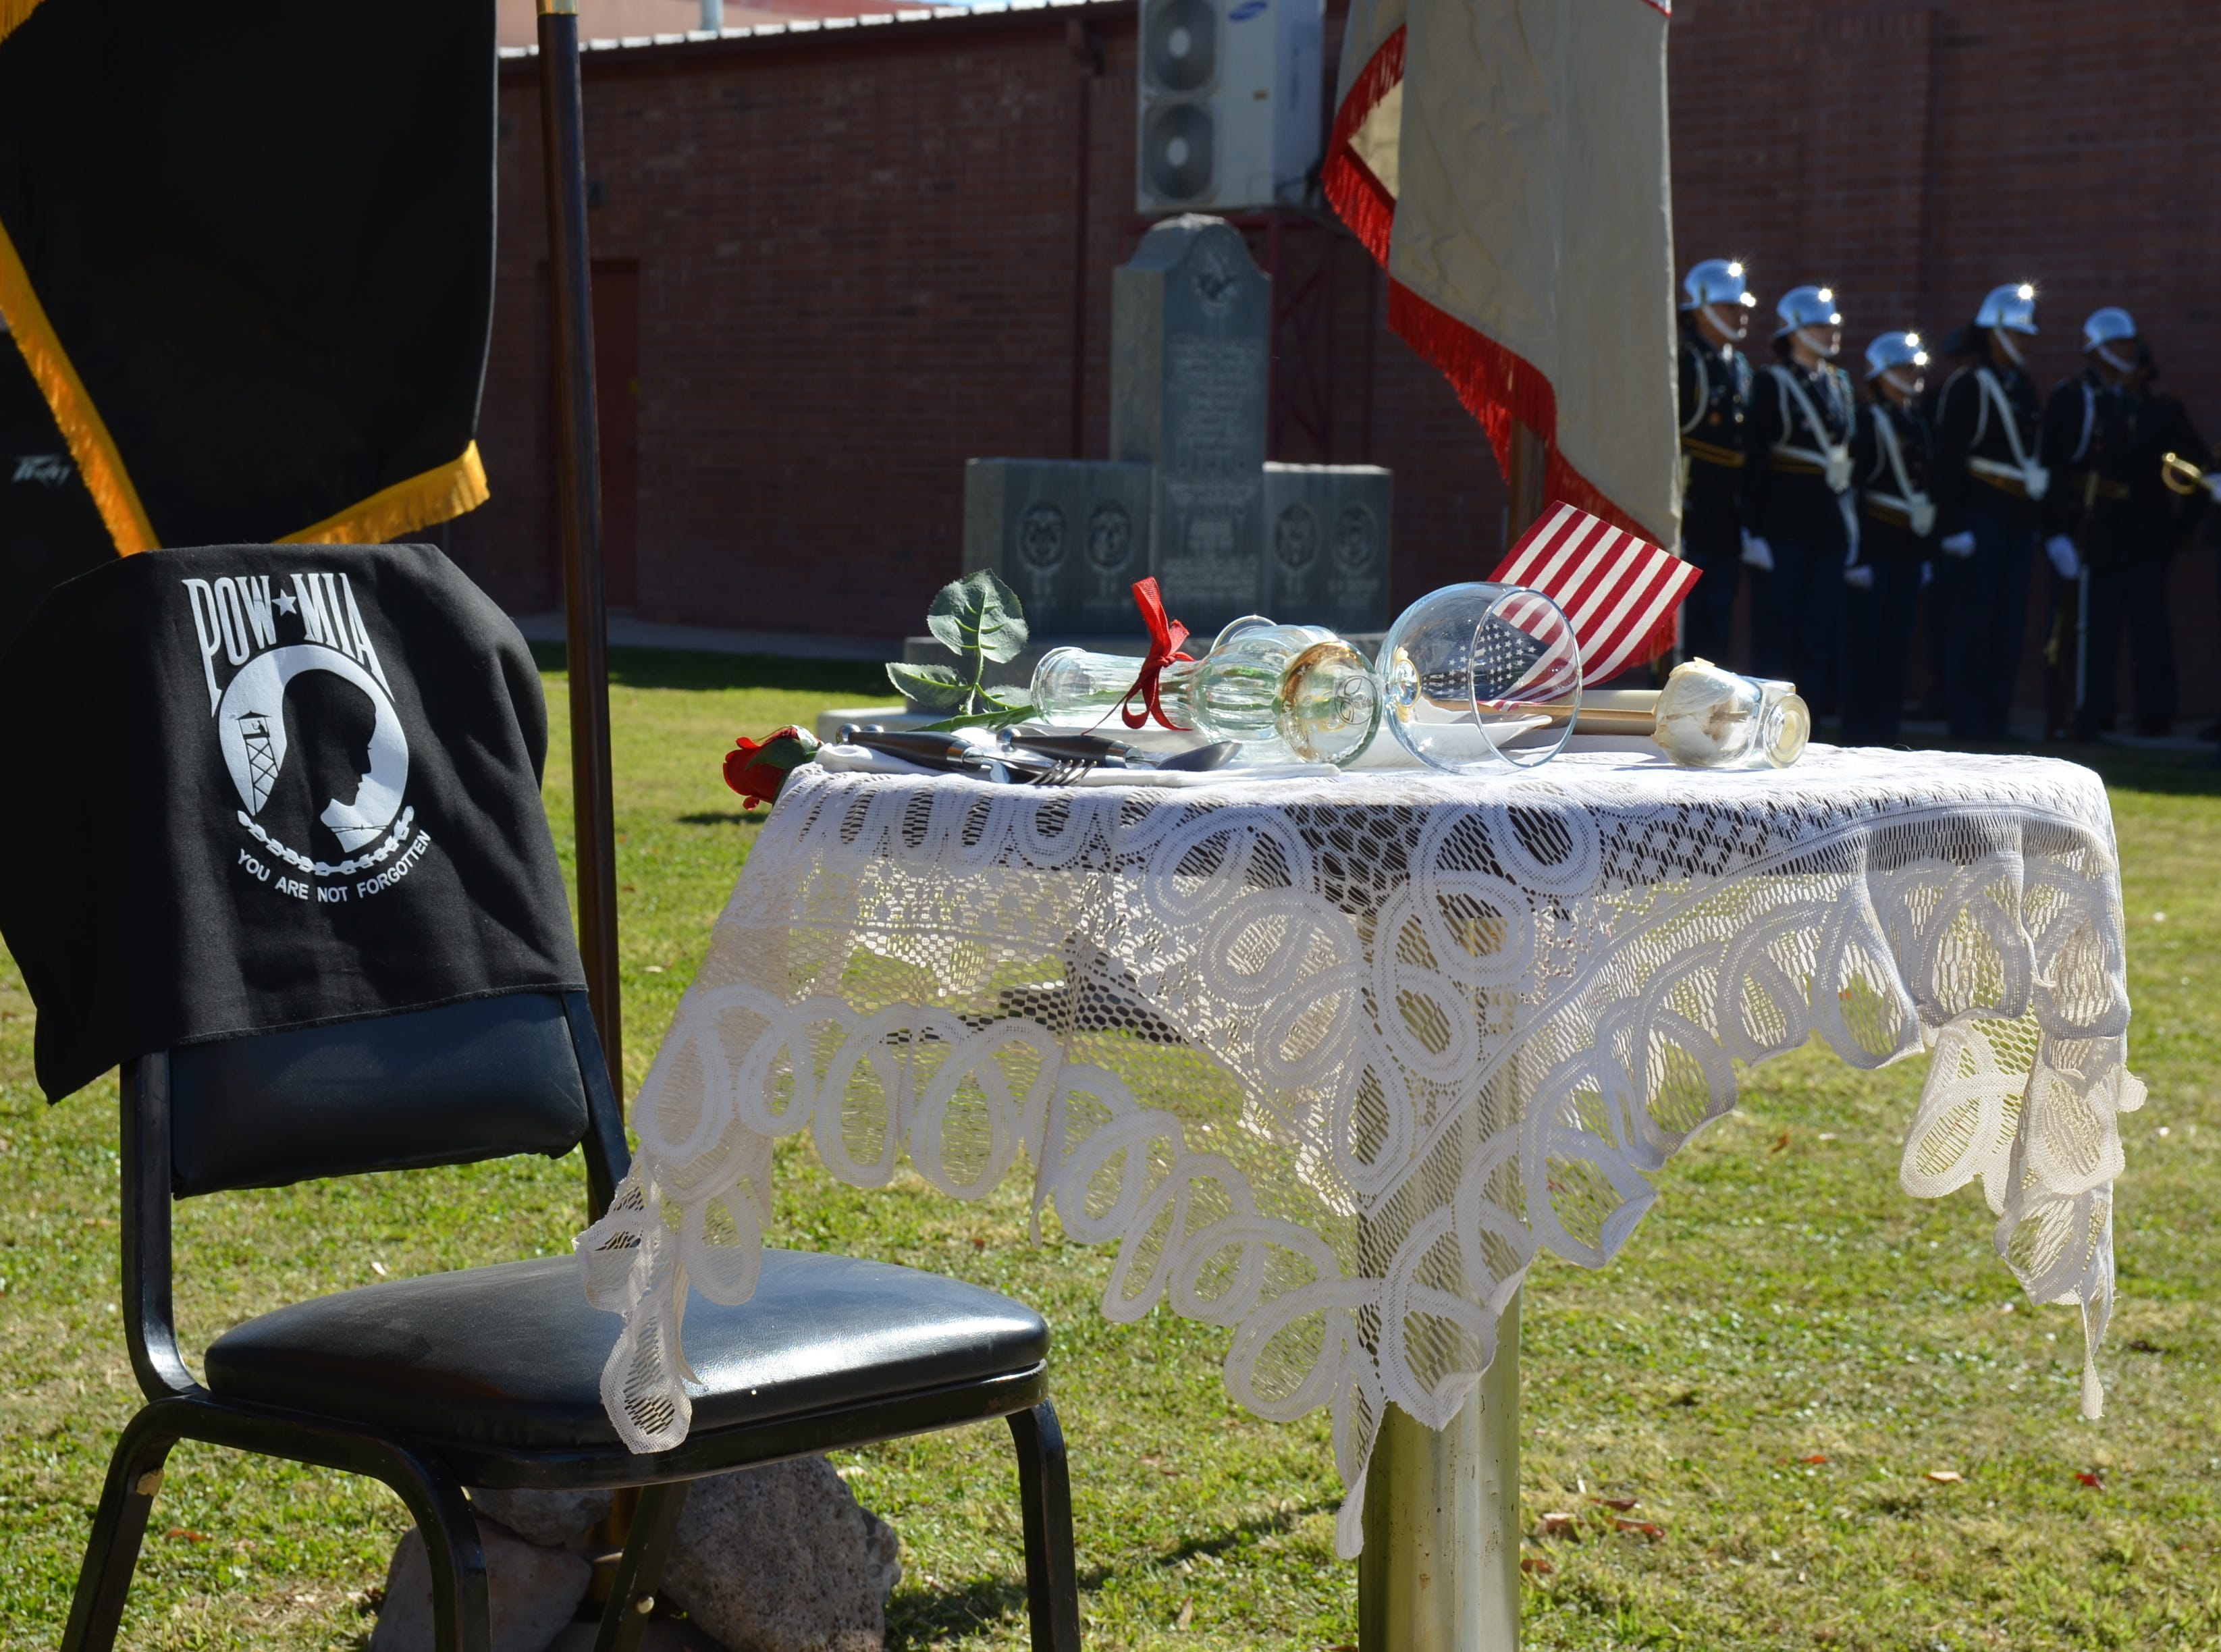 Prisoners of War and Missing in Action servicemen and women were commemorated during the Veteran's Day ceremony.